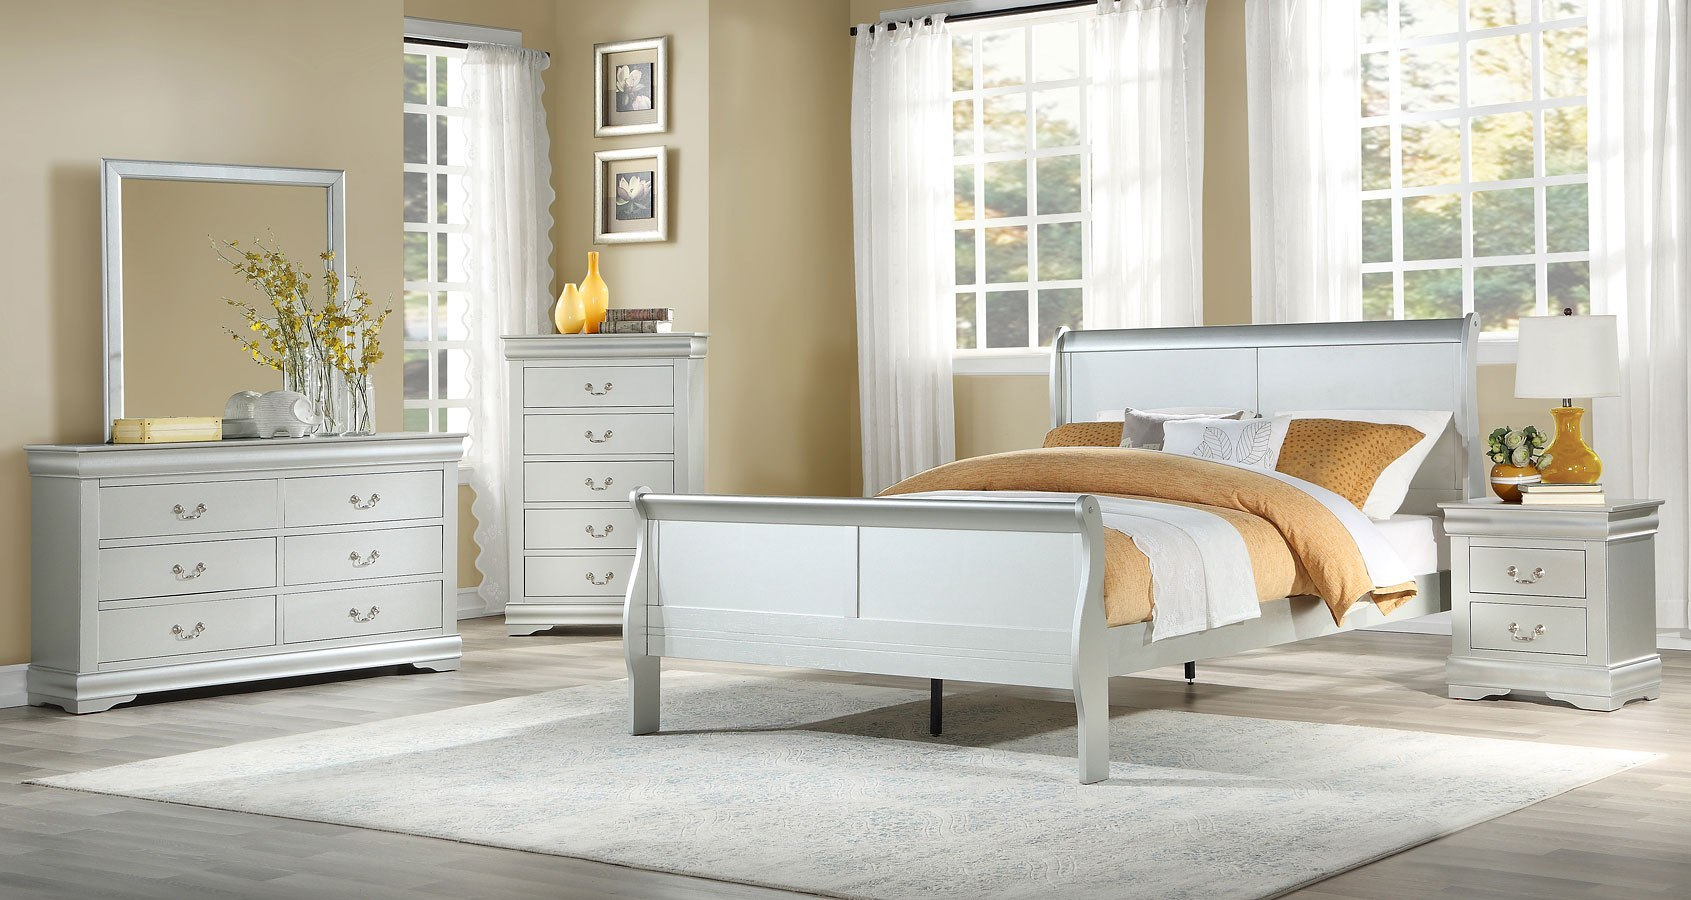 Louis philippe sleigh bedroom set platinum by acme - Louis philippe bedroom collection ...